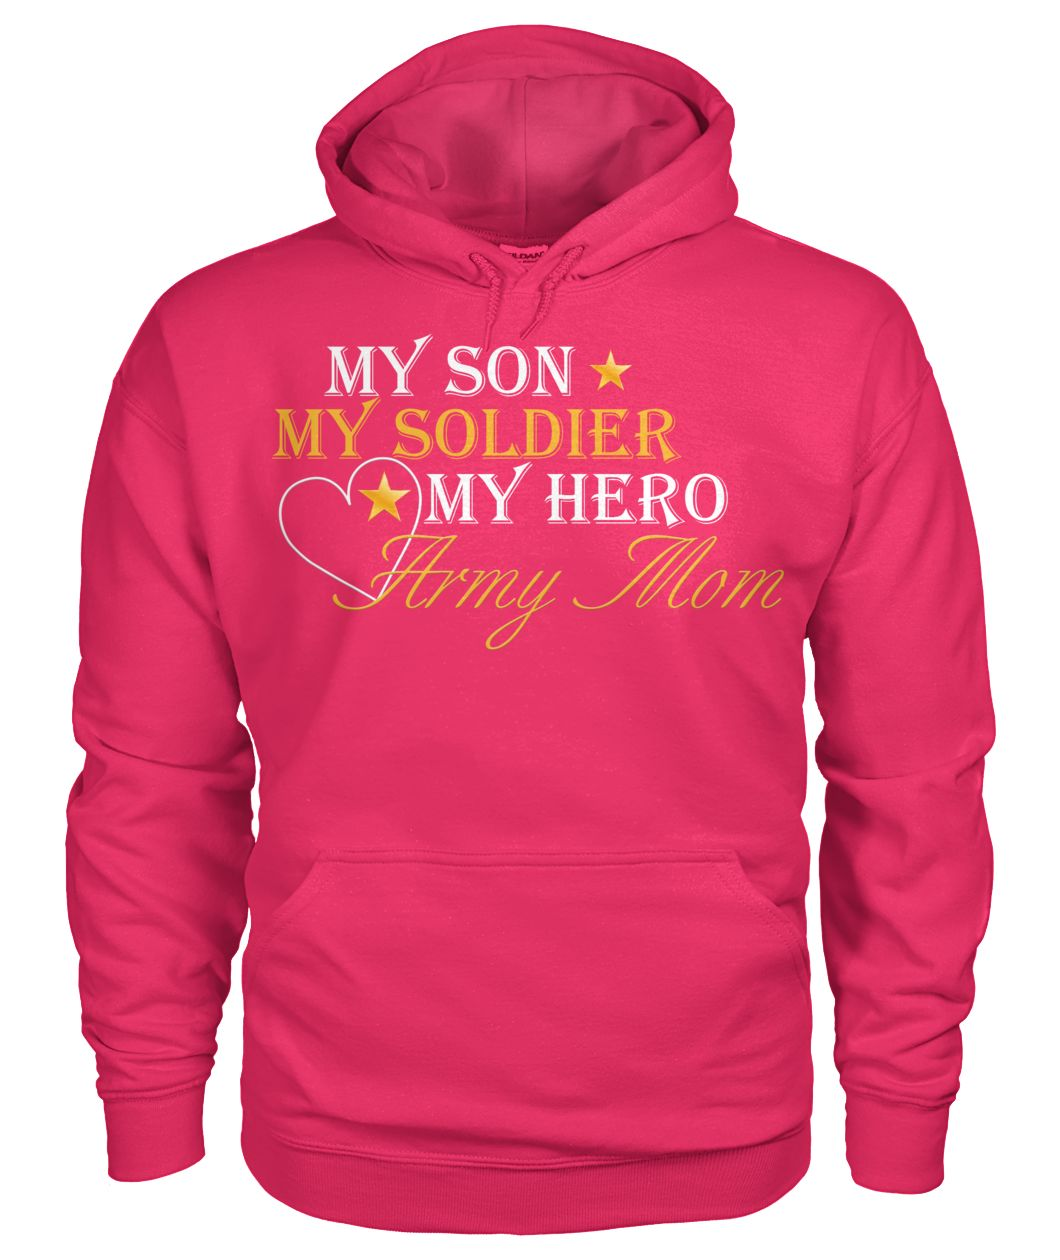 My son my soldier my hero army mom women wp